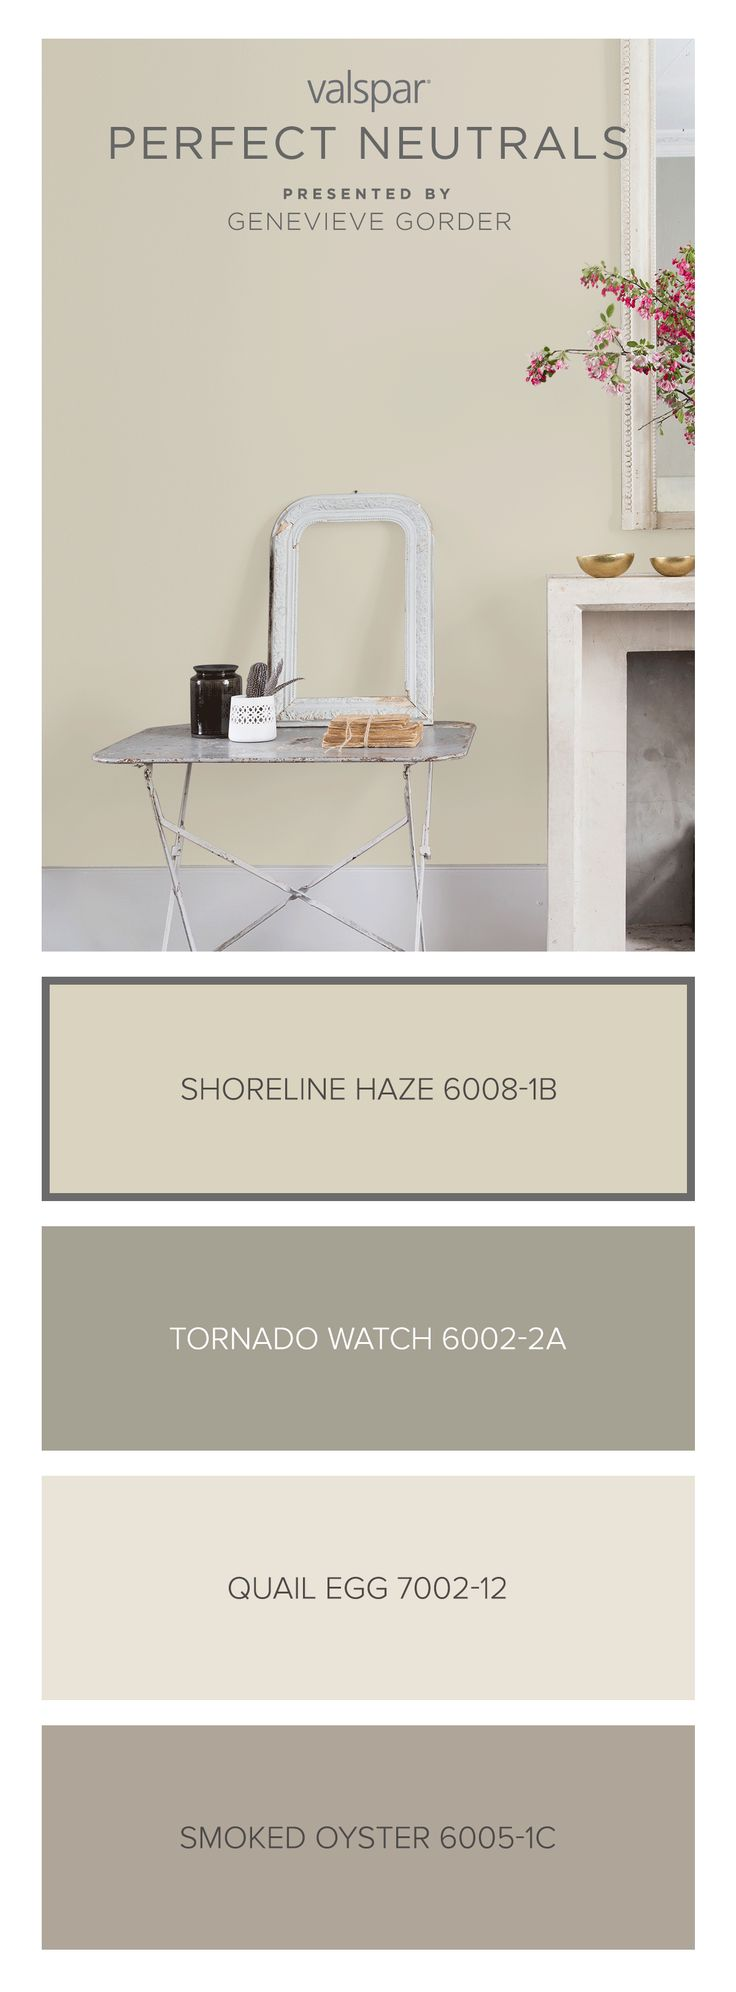 Here's a tip from Genevieve Gorder: Shoreline Haze 6008-1B is a light beige that can play nicely with everyone. Find more inspiration from our Valspar Perfect Neutrals Pinterest board: https://www.pinterest.com/valsparpaint/valspar-perfect-neutrals/ Lowe's: Shoreline Haze 6008-1B ACE: Quill VR101D Indepedent: Quill V094-1